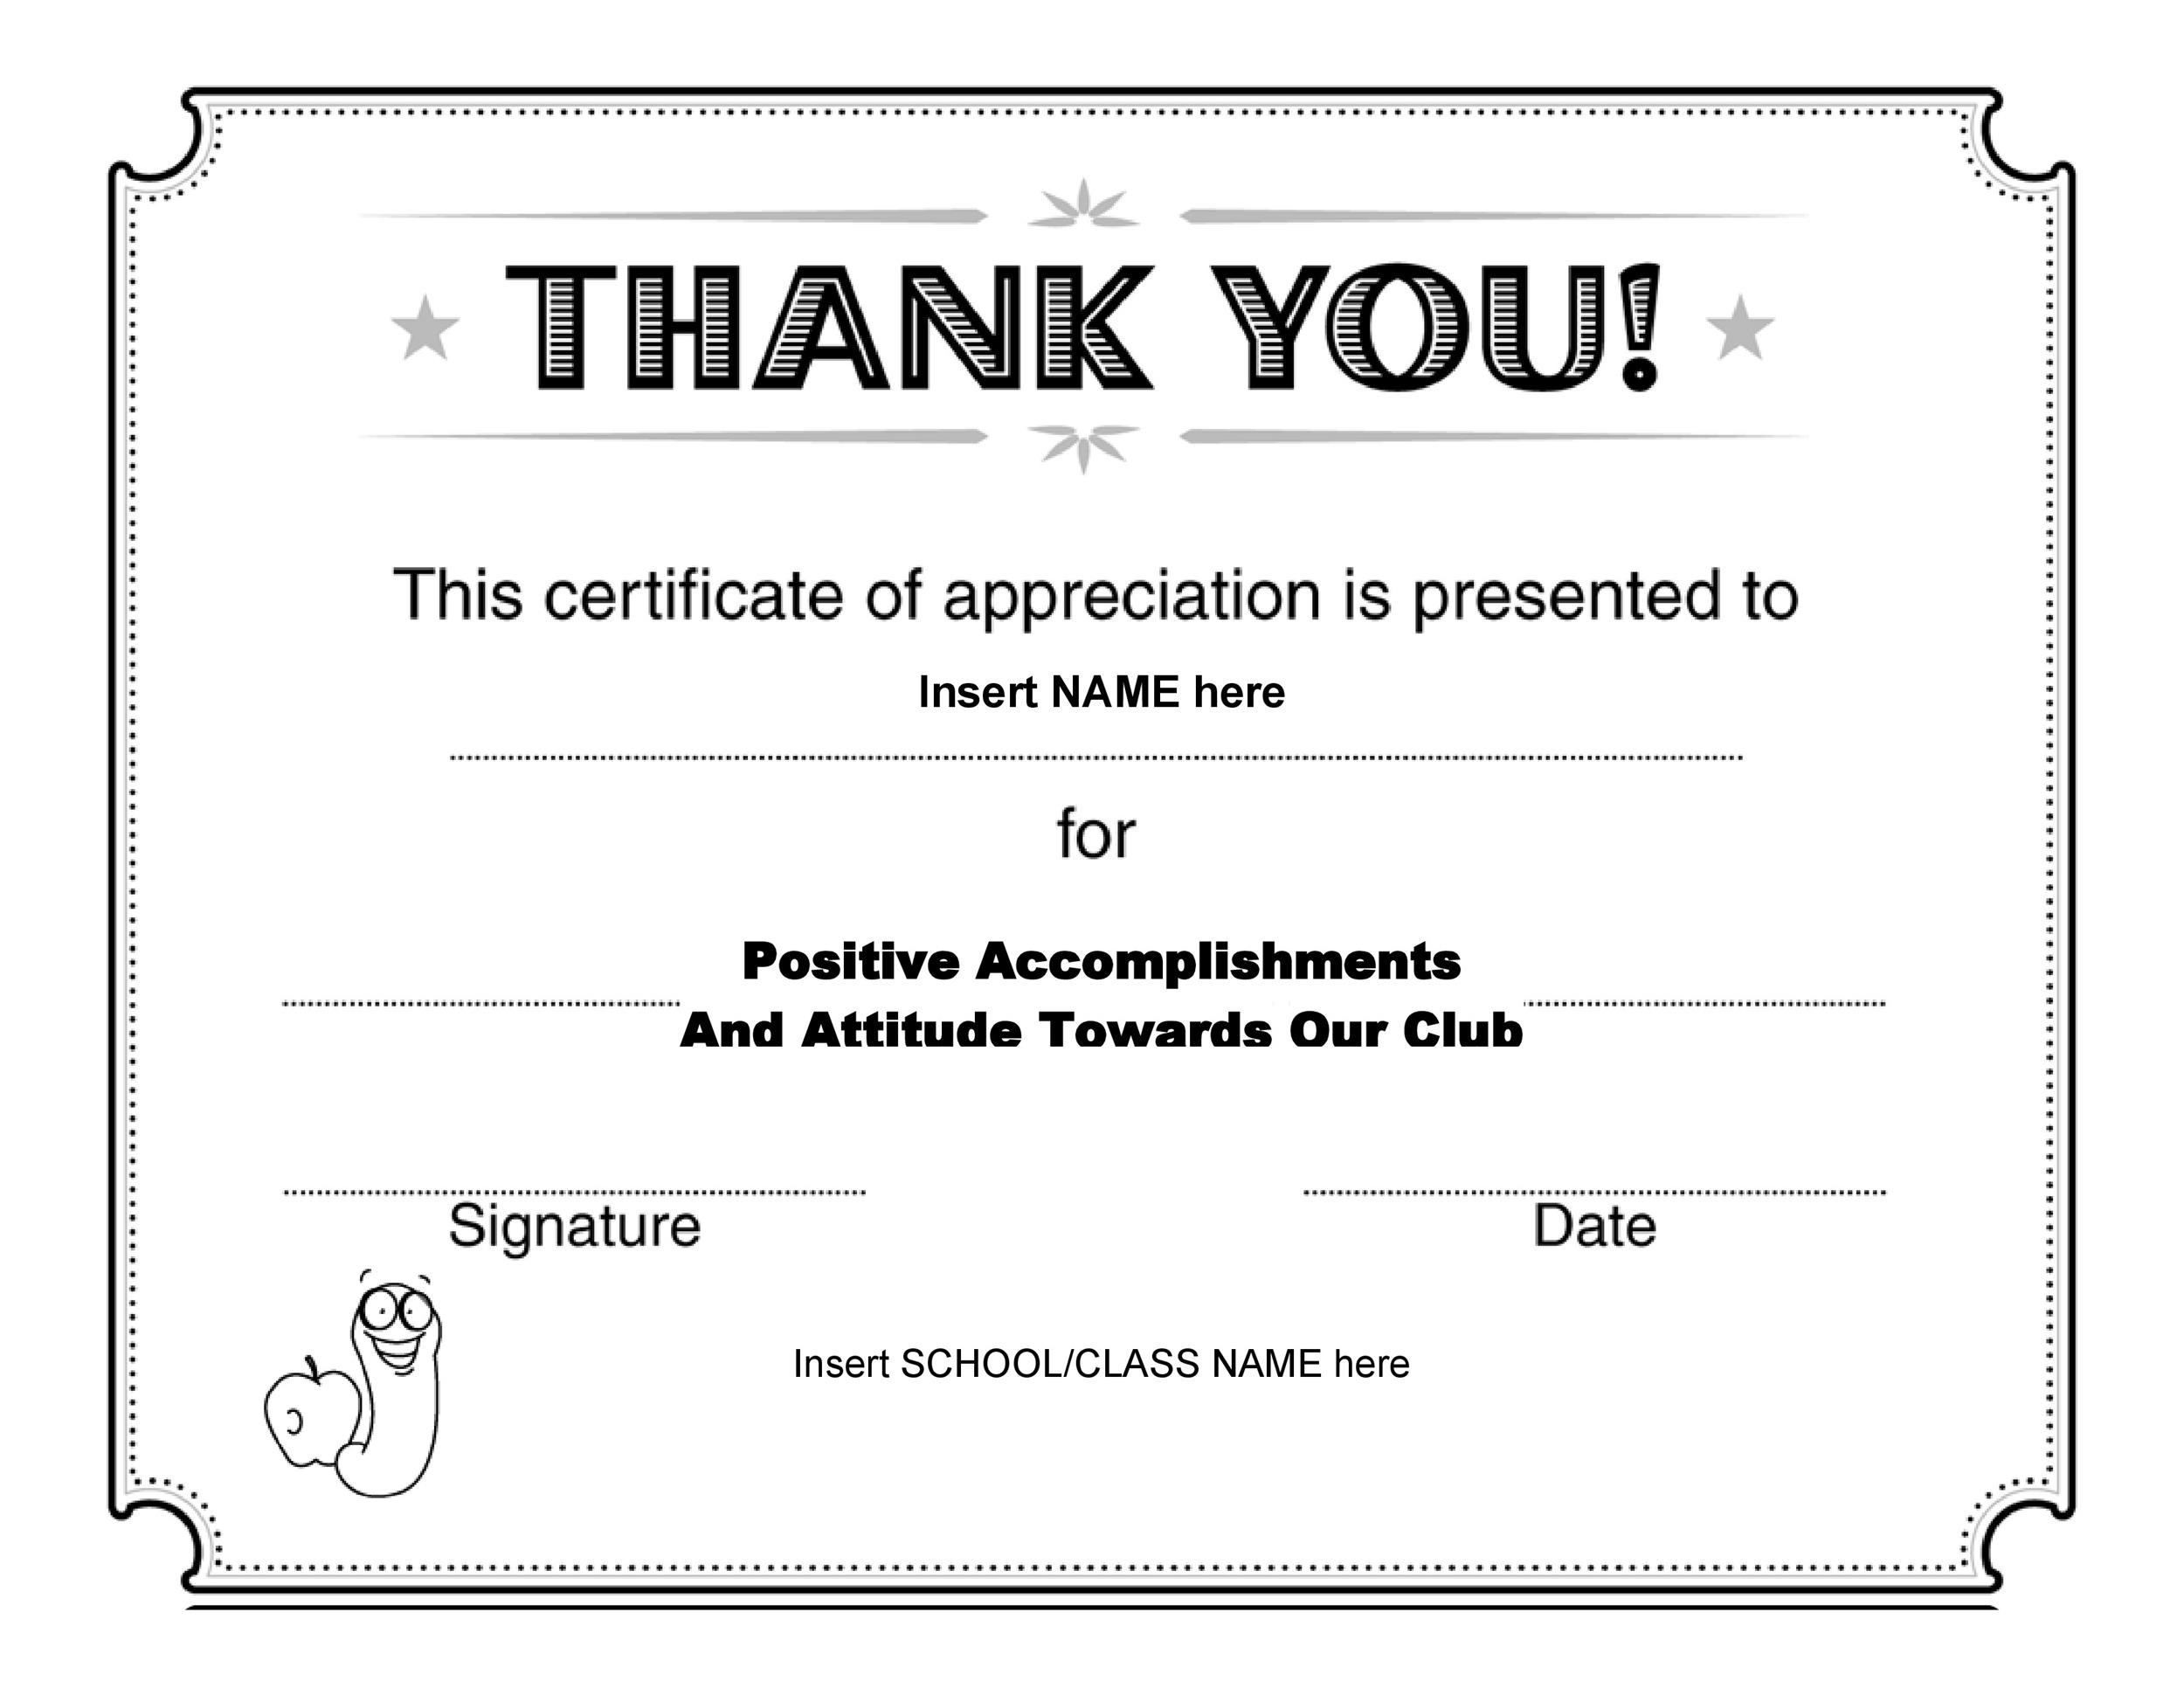 30 free certificate of appreciation templates and letters printable certificate of appreciation 07 icon download 15850 kb yadclub Image collections